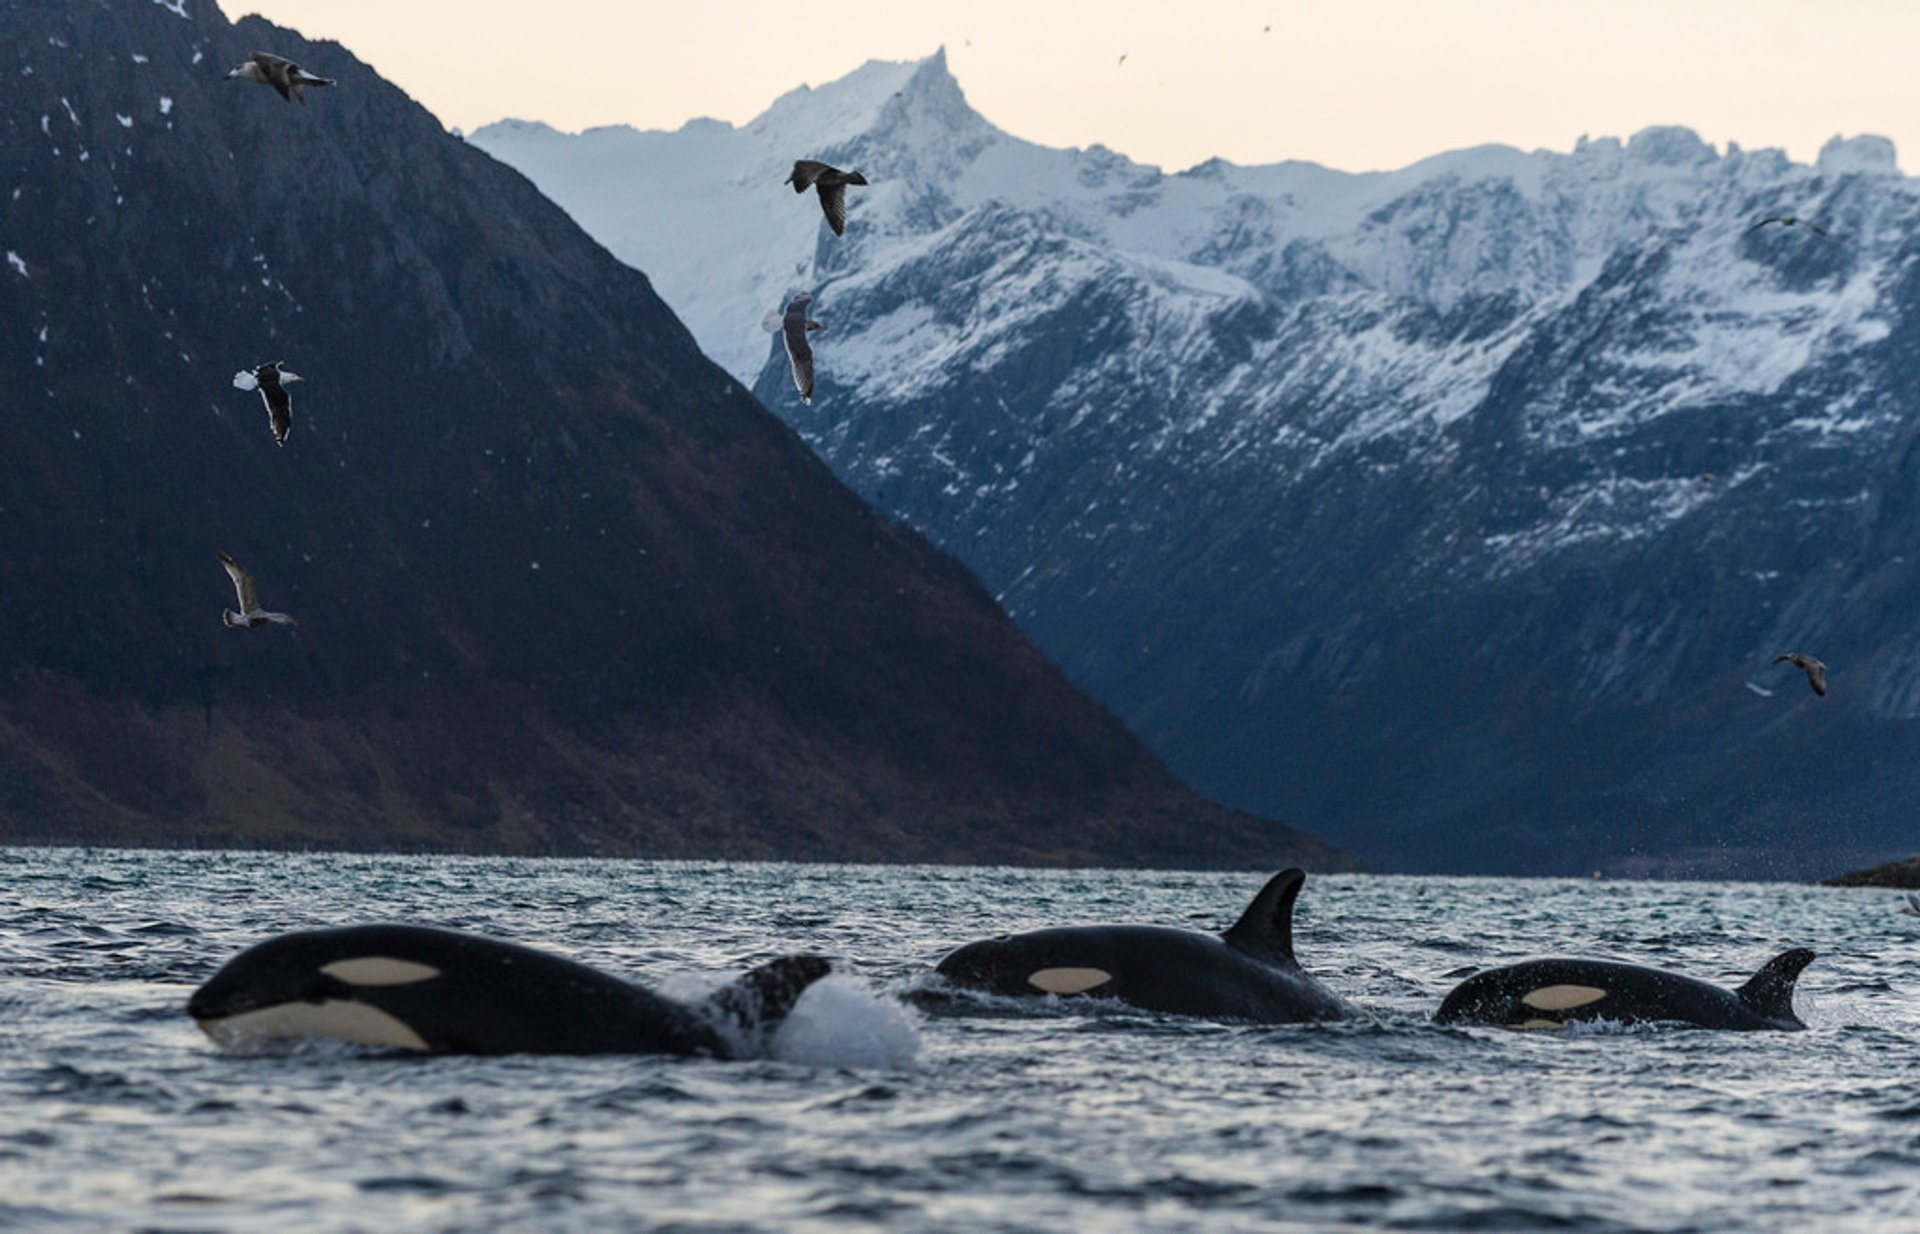 Whale Safari in Norway 2020 - Best Time